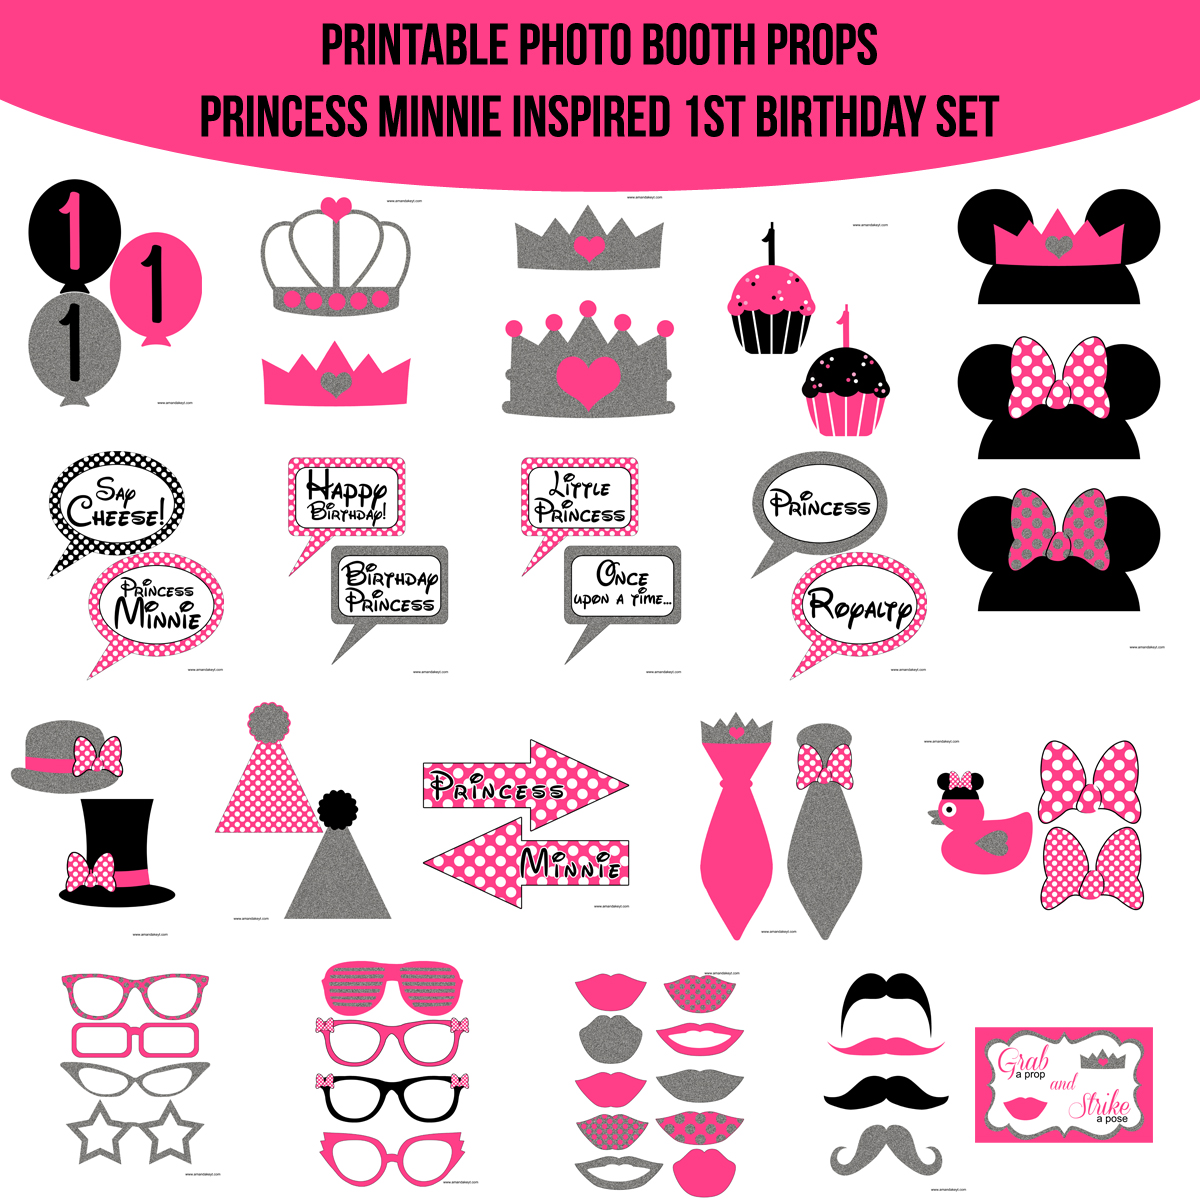 image regarding Minnie Mouse Photo Booth Props Printable named Fast Obtain Princess Minnie Encouraged 1st Birthday Printable Picture Booth Prop Fastened Amanda Keyt Printable Plans